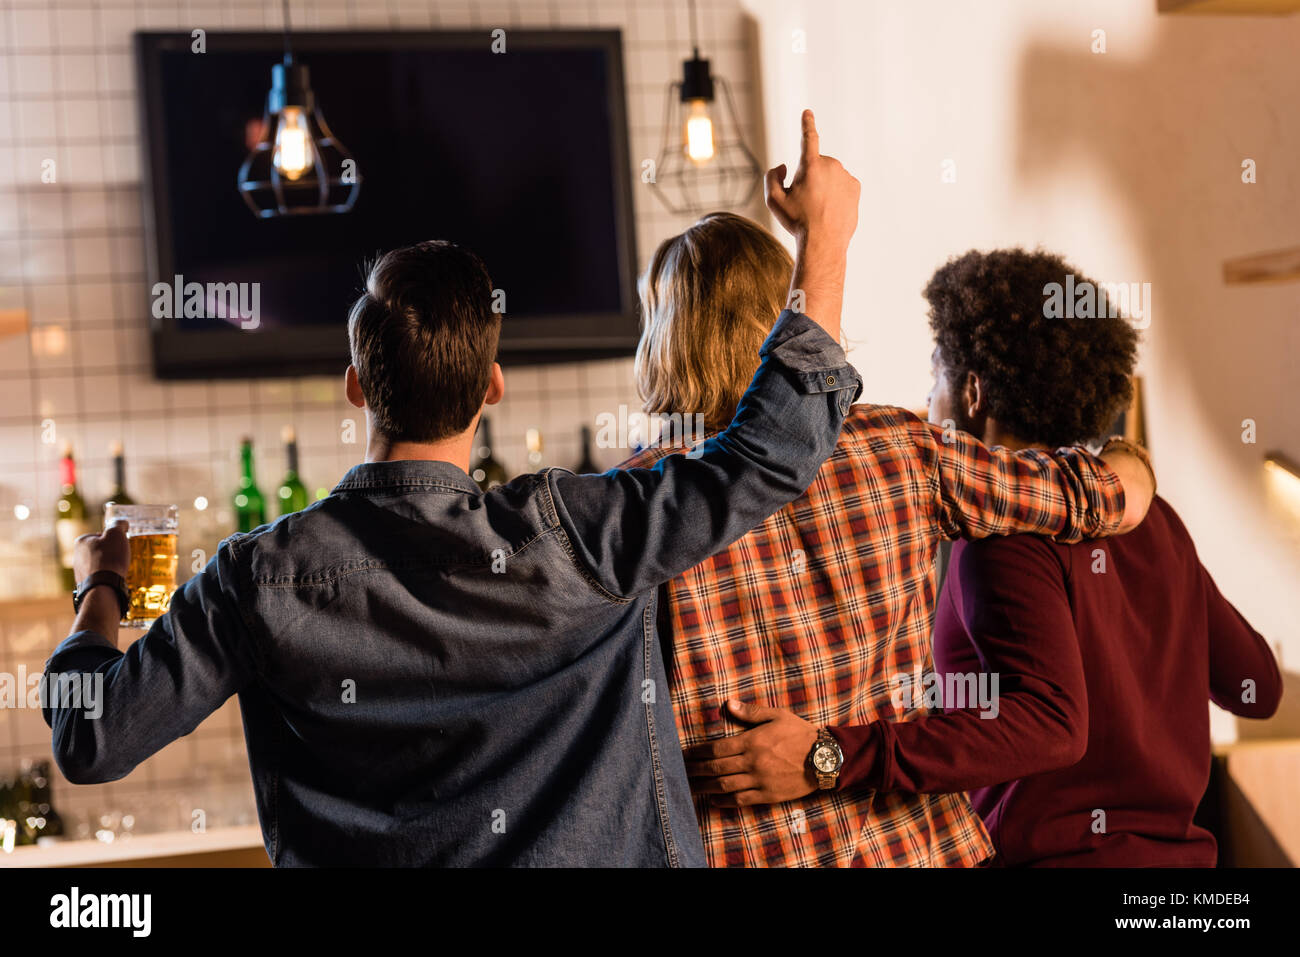 friends watching tv in bar - Stock Image